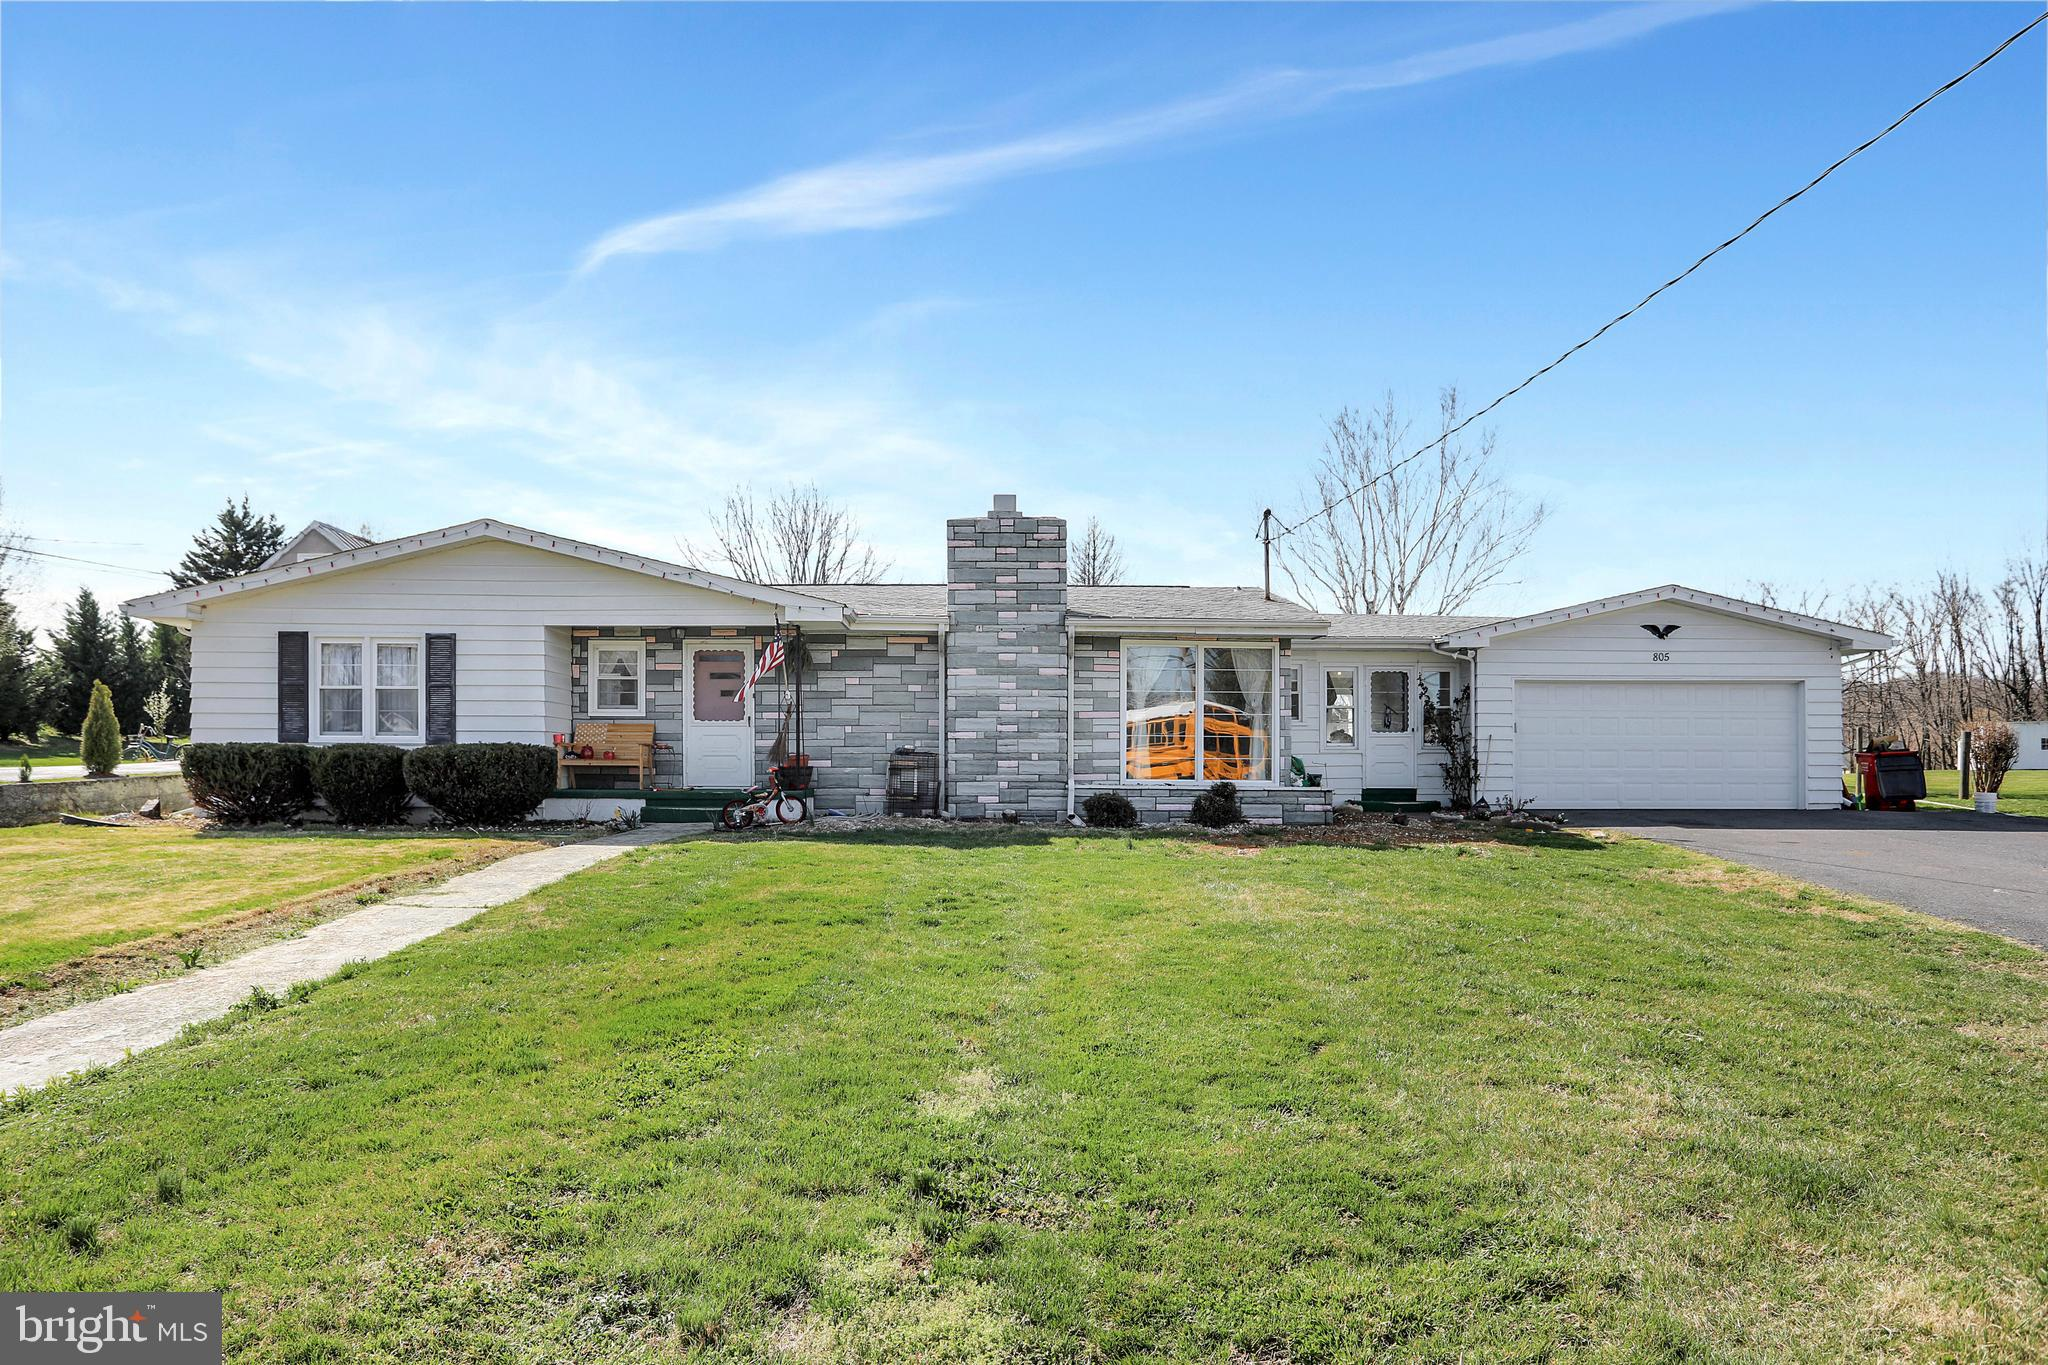 Location, Location, Location! This charming rancher has endless possibilities & plenty to offer. No